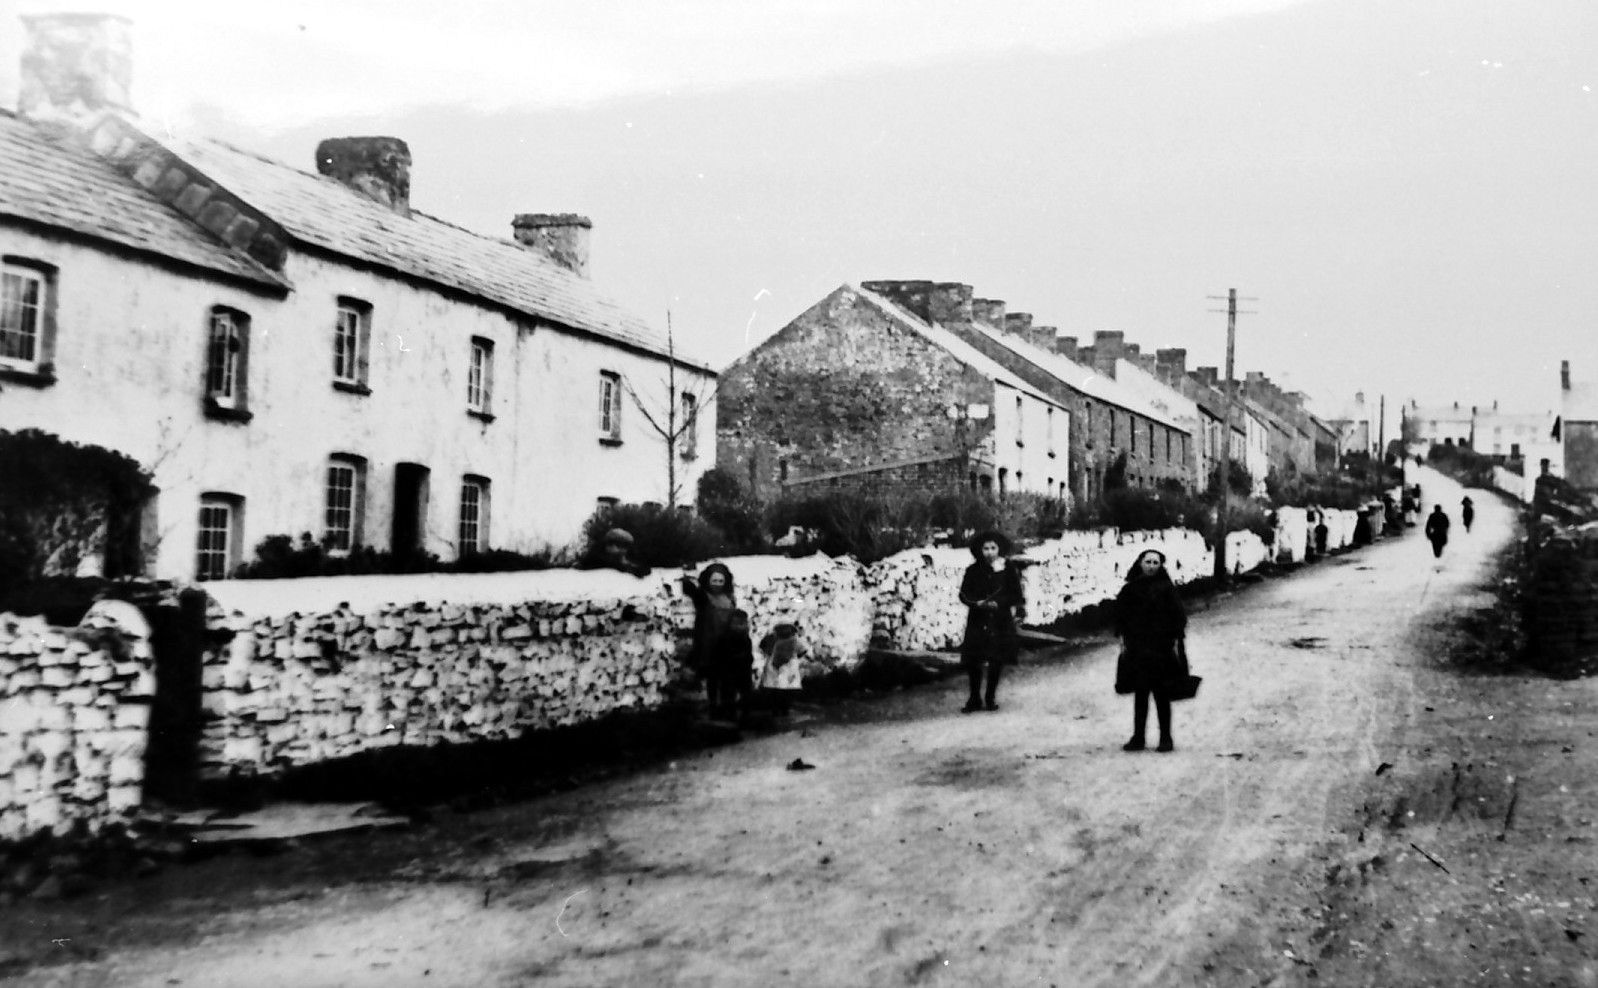 Kenfig Hill 1910